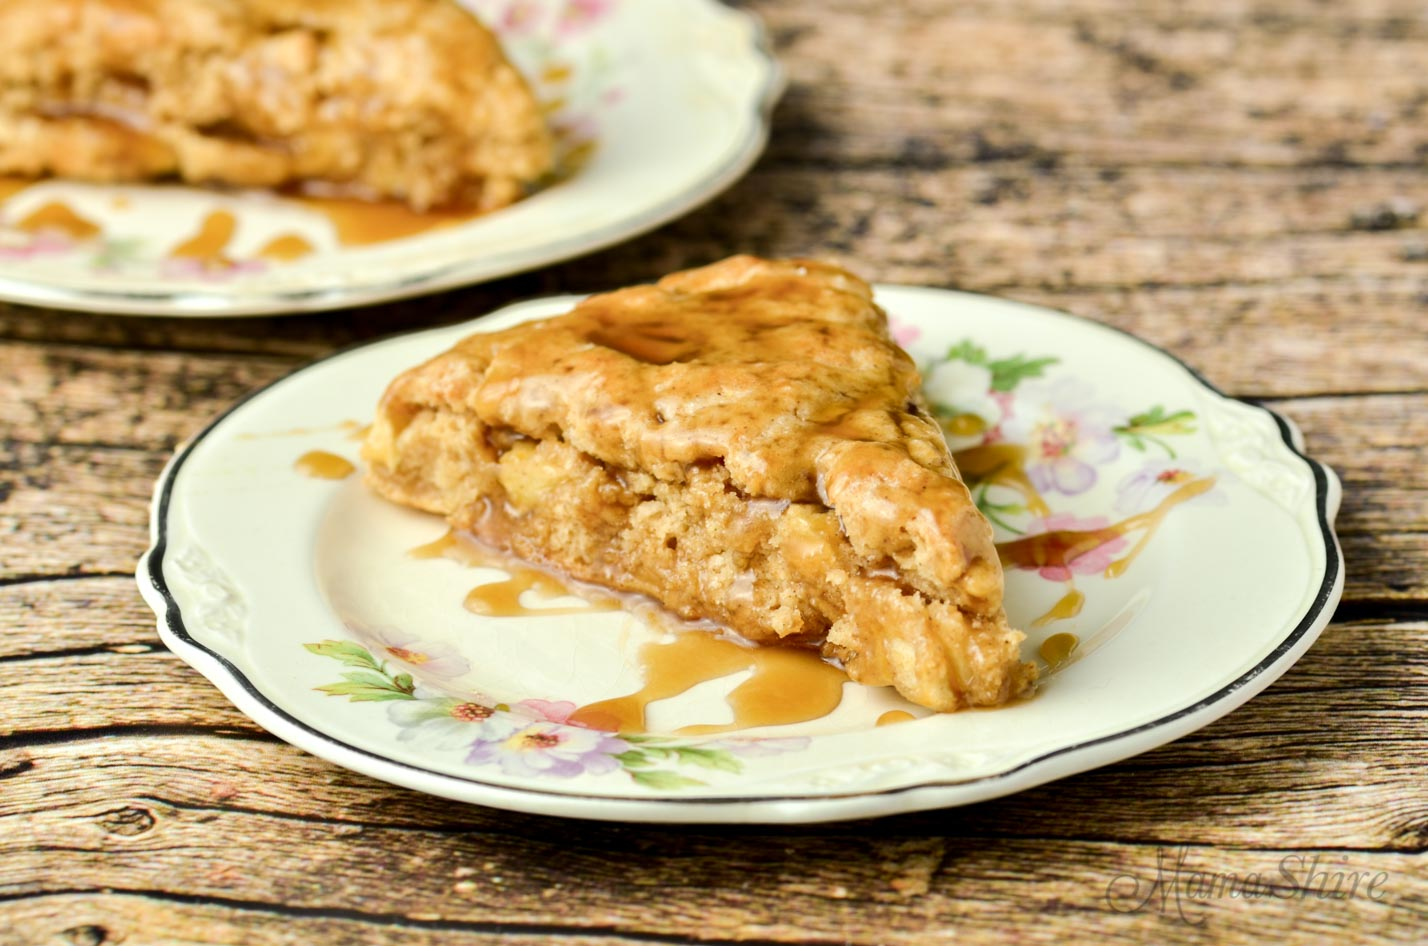 Gluten-free apple cinnamon scones with a drizzle of caramel sauce.